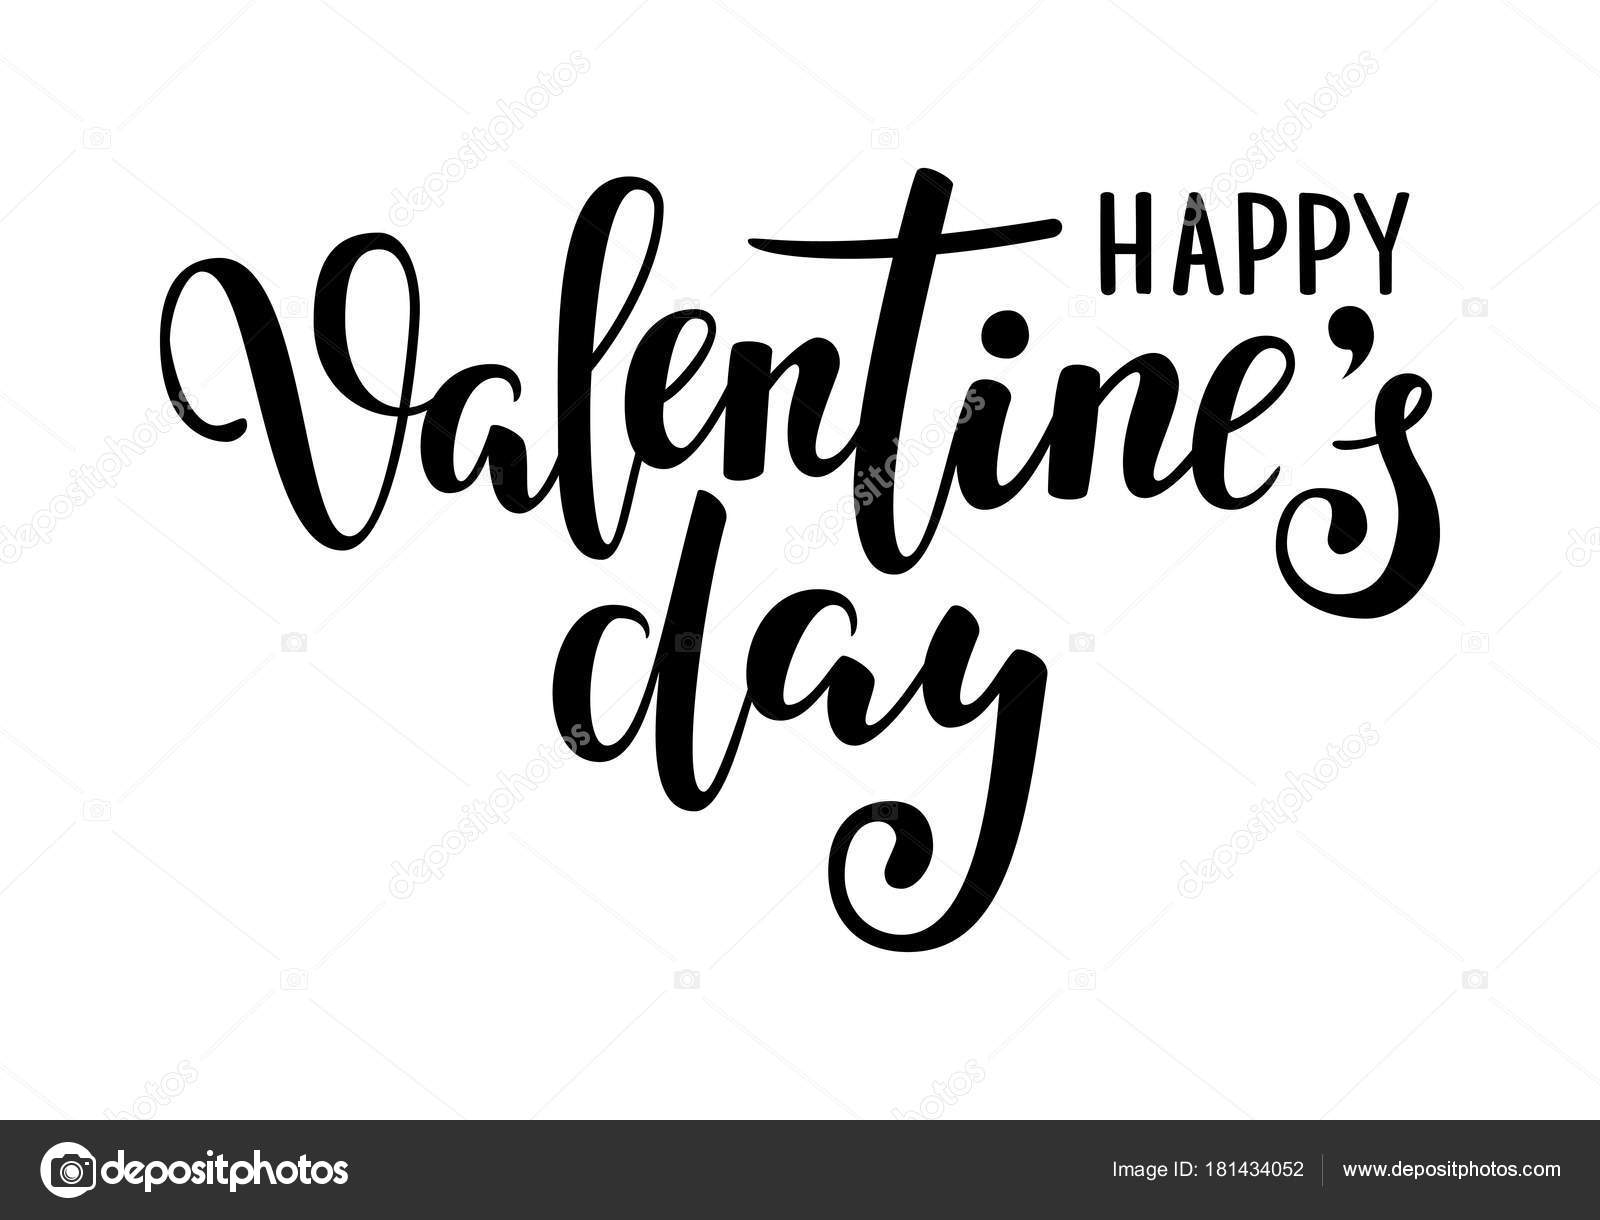 Happy Valentine S Day Hand Drawn Creative Calligraphy And Brush Pen Lettering Isolated On White Background Design For Holiday Greeting Card Invitation